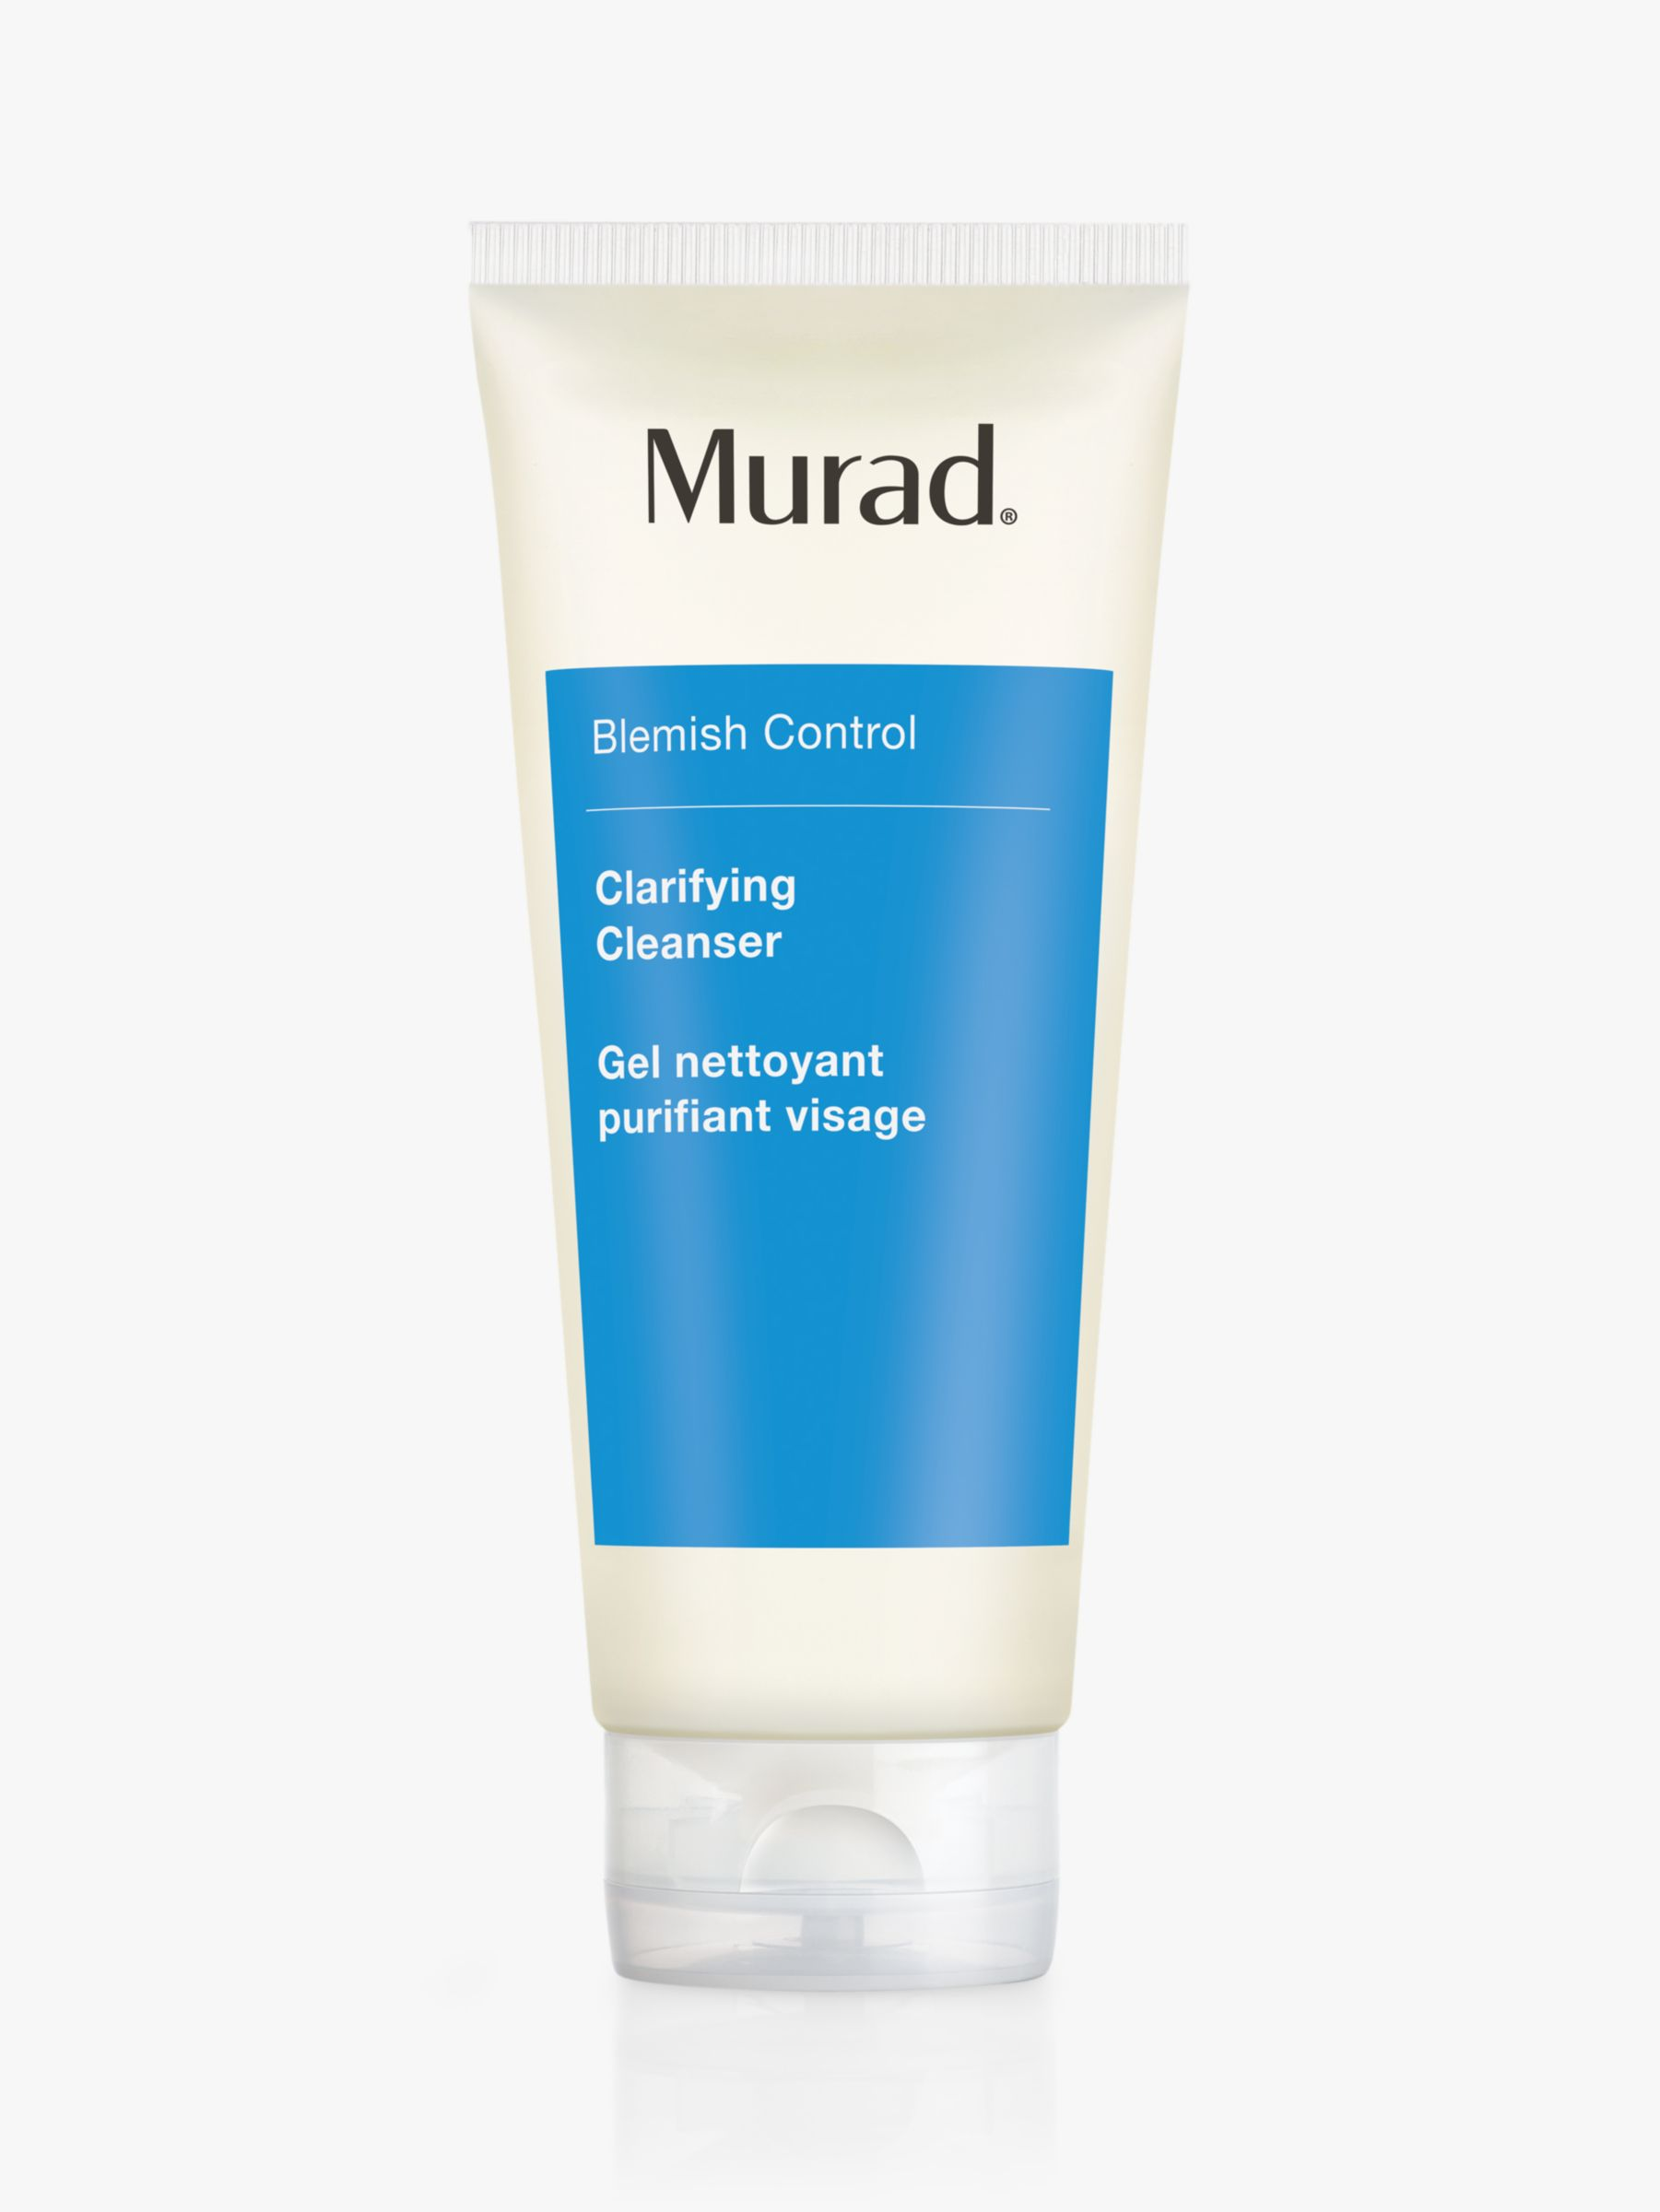 Murad Murad Clarifying Cleanser, 200ml